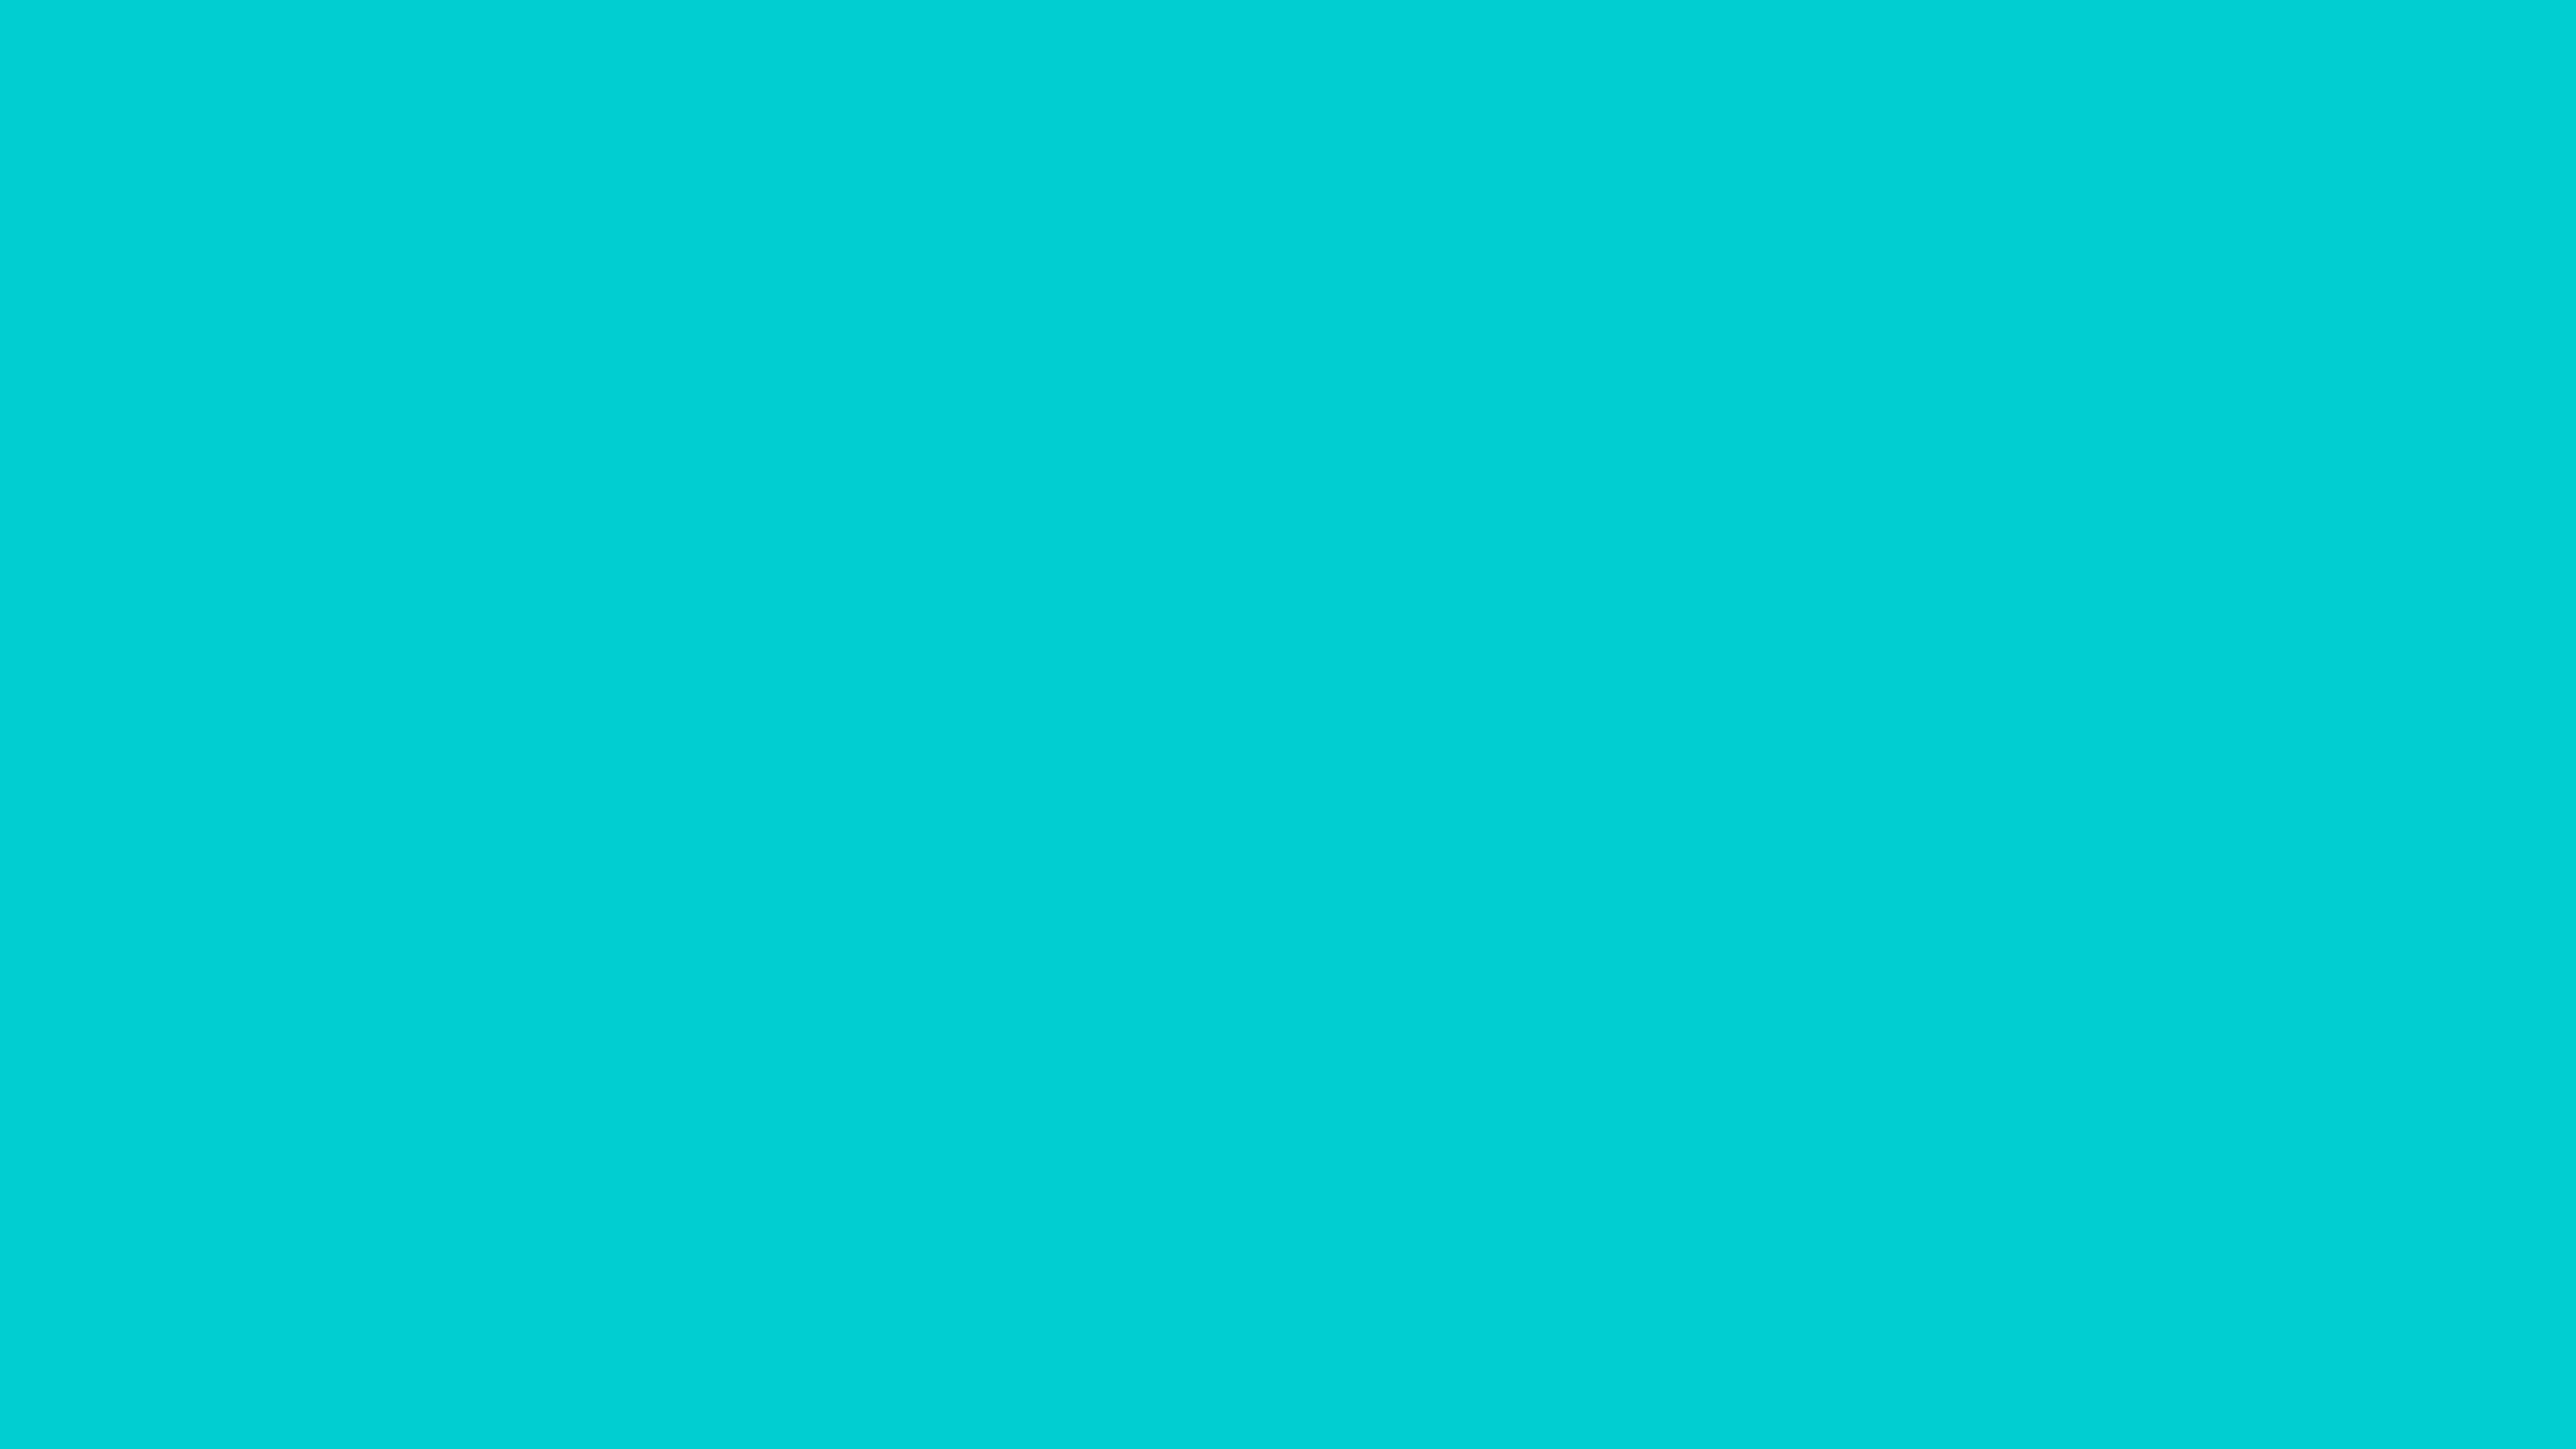 4096x2304 Dark Turquoise Solid Color Background